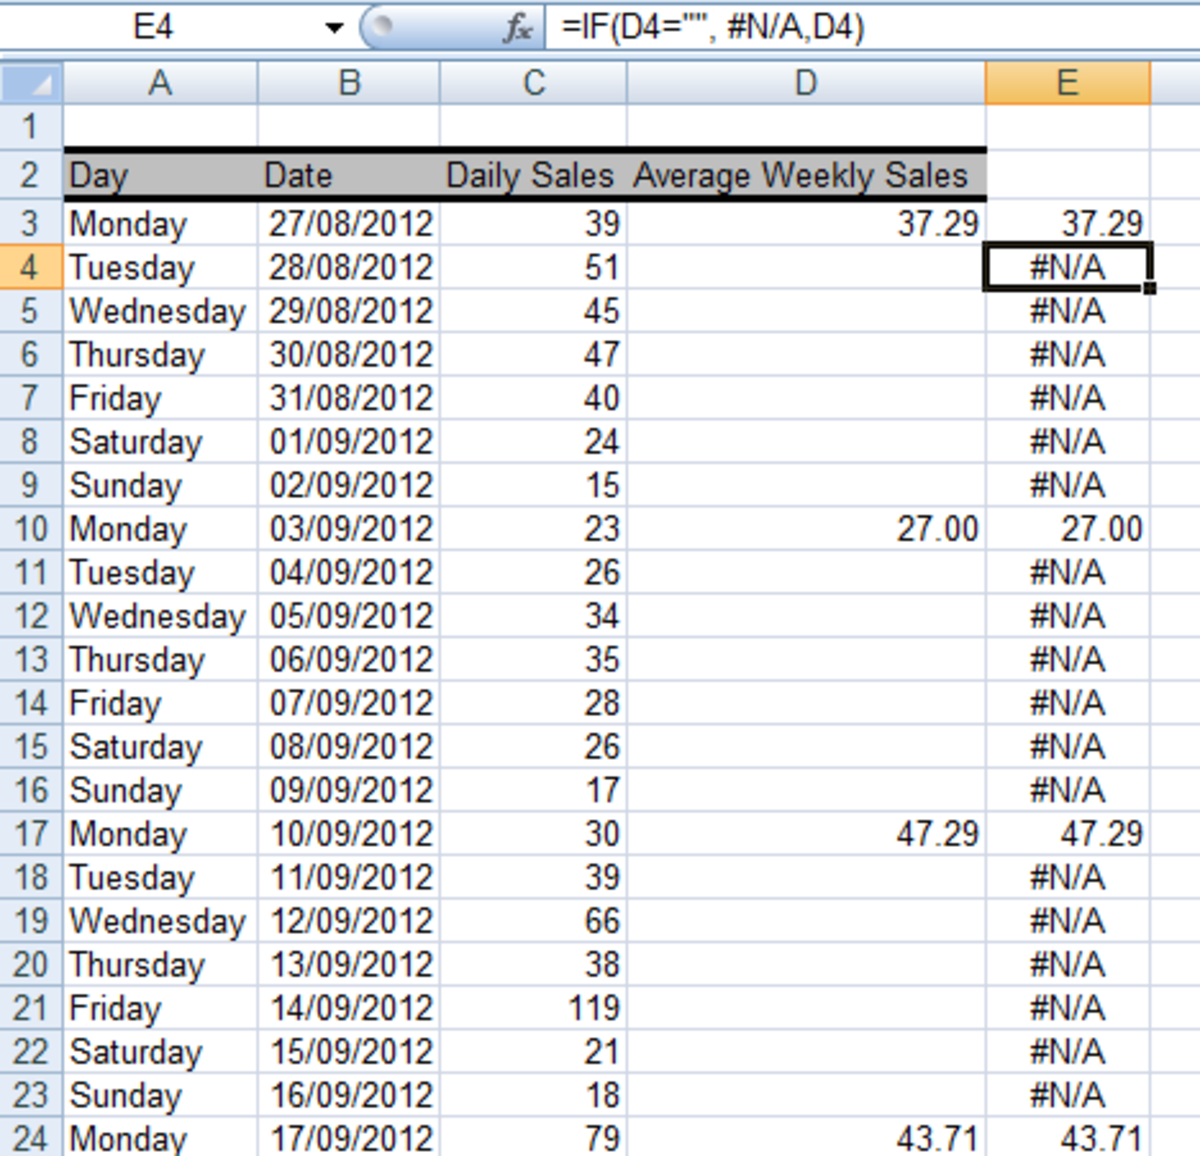 Ediblewildsus  Marvellous How To Get Excel  And  To Ignore Empty Cells In A Chart Or  With Exciting Using The If Function In A Formula To Convert Empty Cells To Na With Archaic Excel Air Also Using E In Excel In Addition Merge Columns Excel And How To Lock Header In Excel As Well As Tools Menu In Excel Additionally Using Pivot Tables In Excel From Turbofuturecom With Ediblewildsus  Exciting How To Get Excel  And  To Ignore Empty Cells In A Chart Or  With Archaic Using The If Function In A Formula To Convert Empty Cells To Na And Marvellous Excel Air Also Using E In Excel In Addition Merge Columns Excel From Turbofuturecom